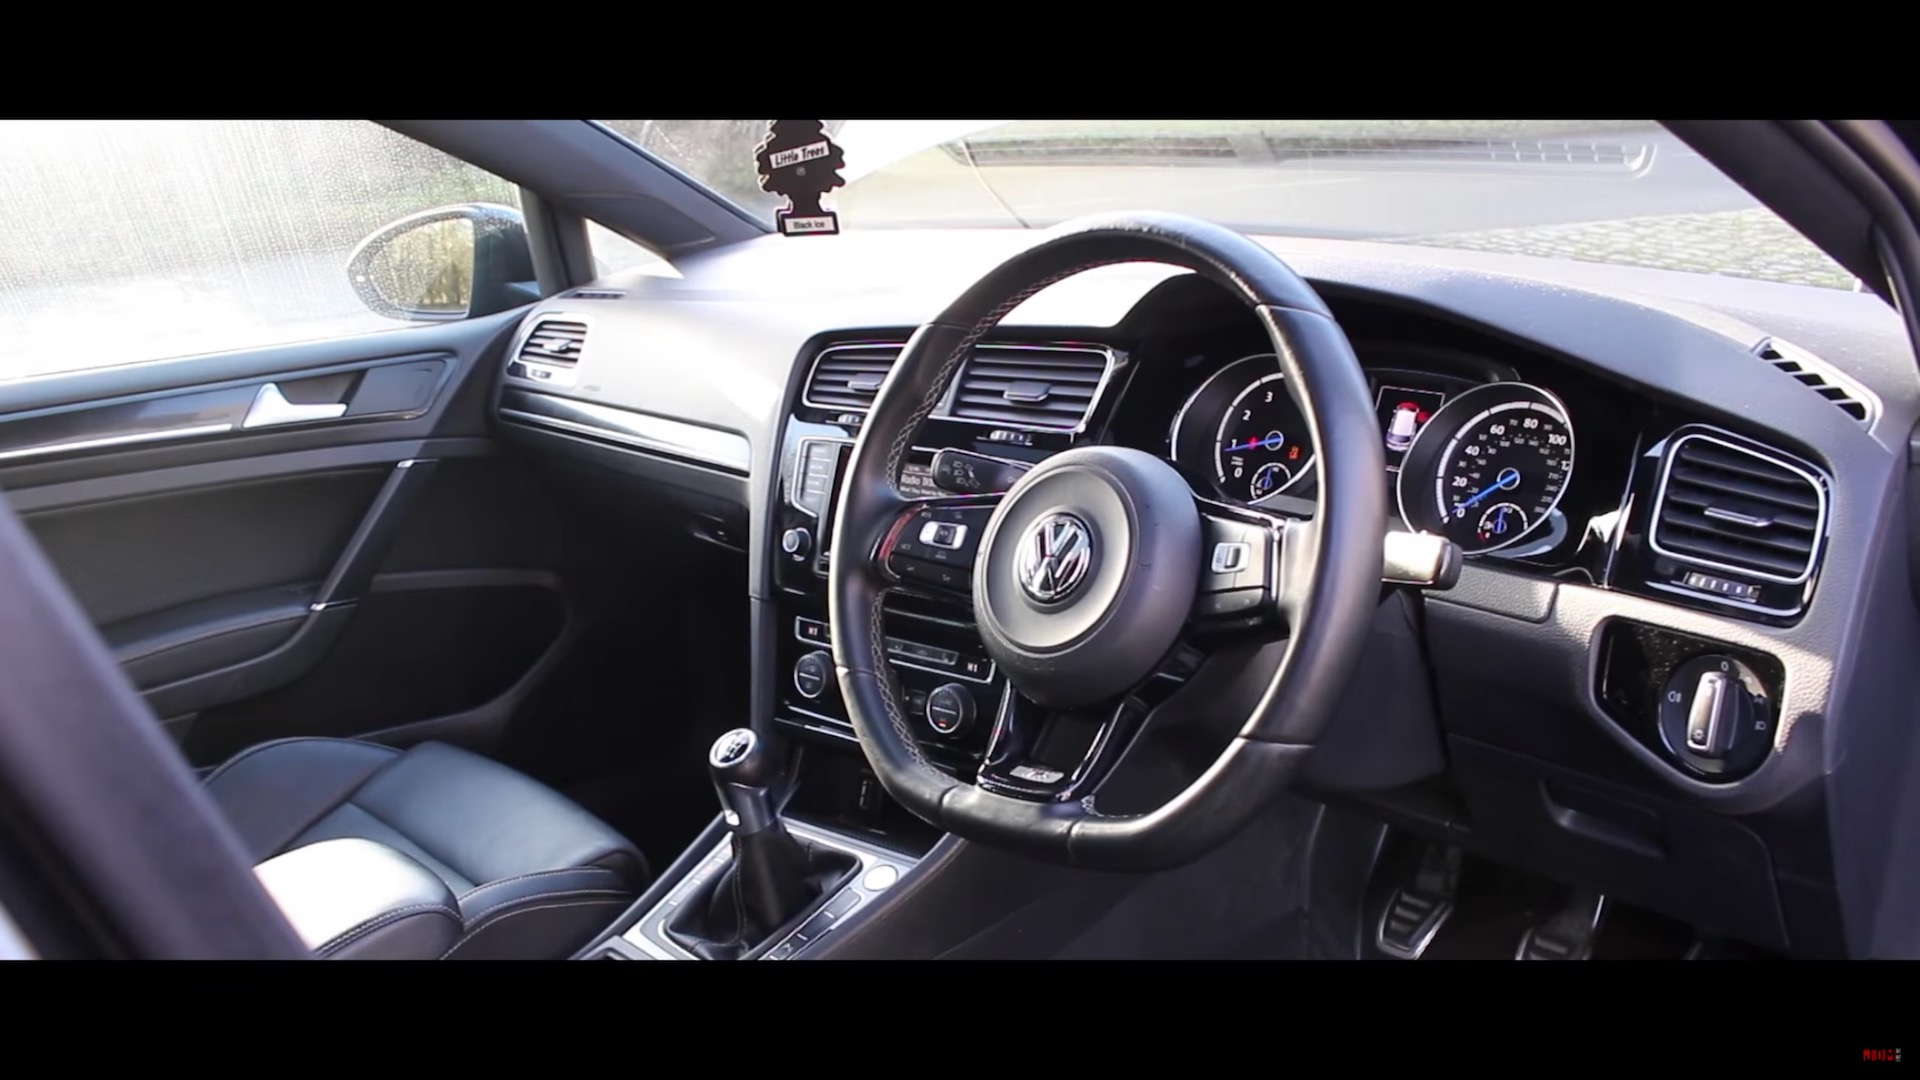 Test Drive A Golf R With 560 Horsepower Under The Hood - 00007